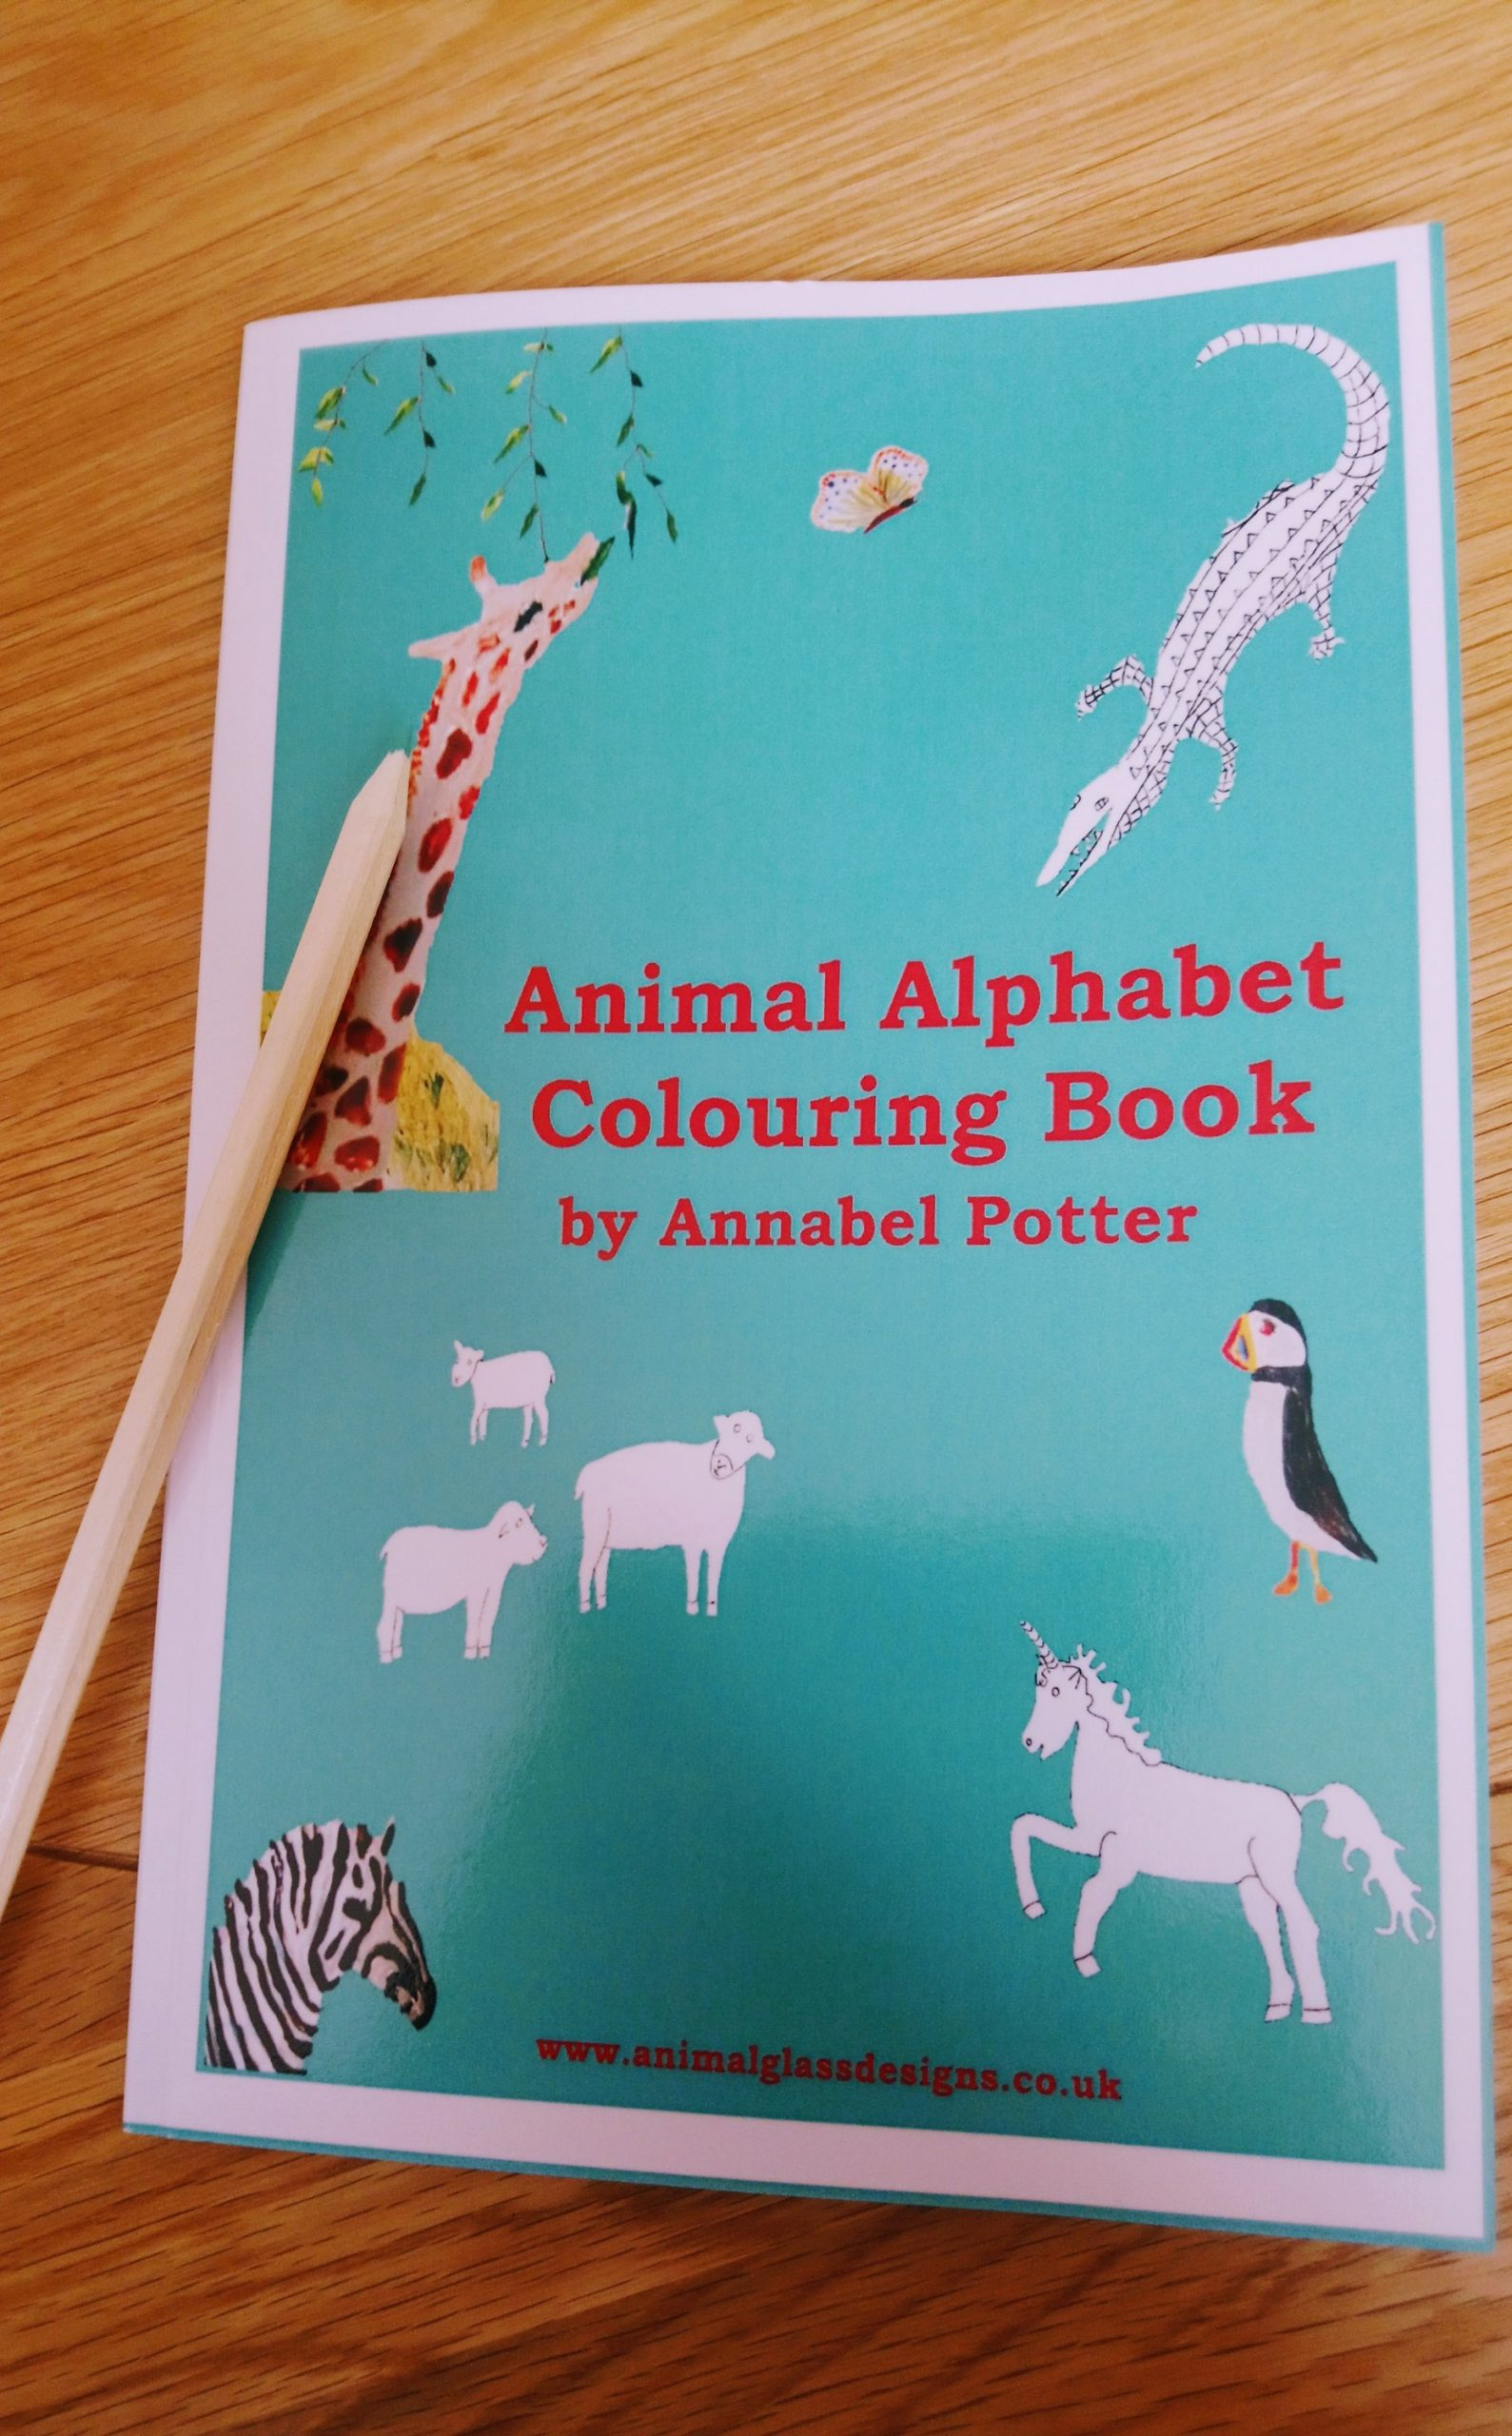 Picture of travel size animal alphabet colouring book with a pencil